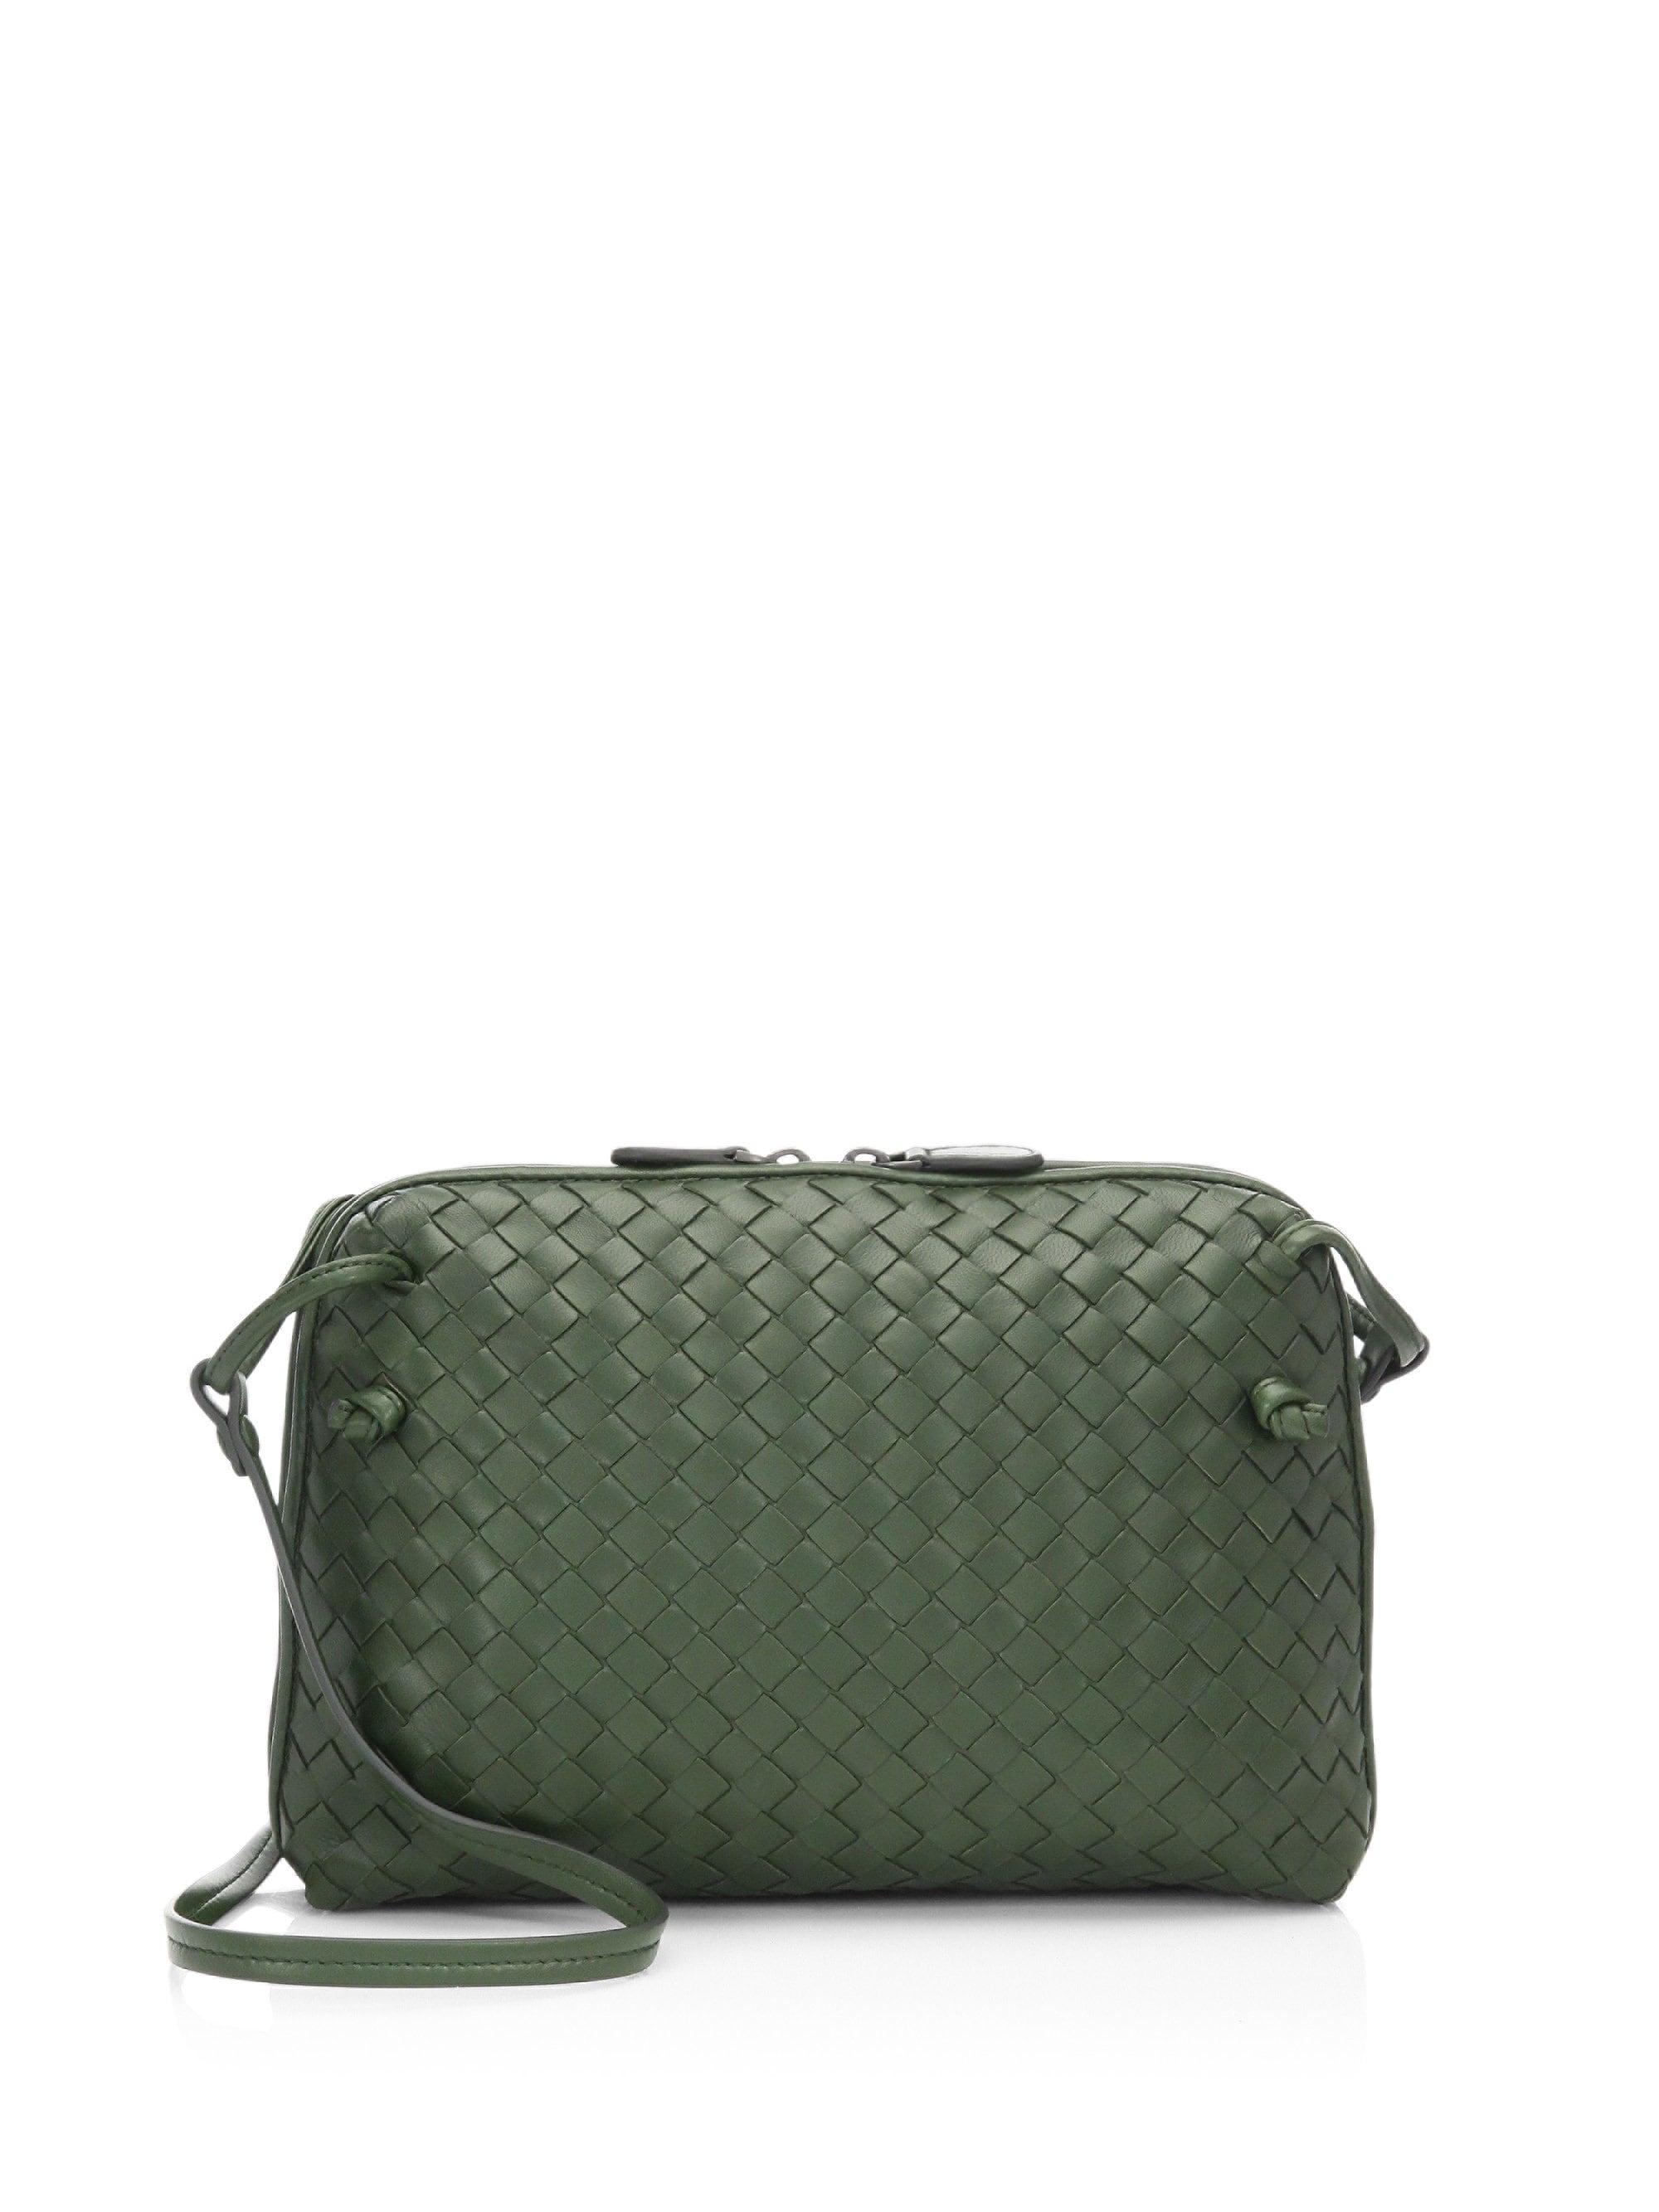 203471fffc73 Lyst - Bottega Veneta Small Pillow Intrecciato Leather Crossbody Bag ...